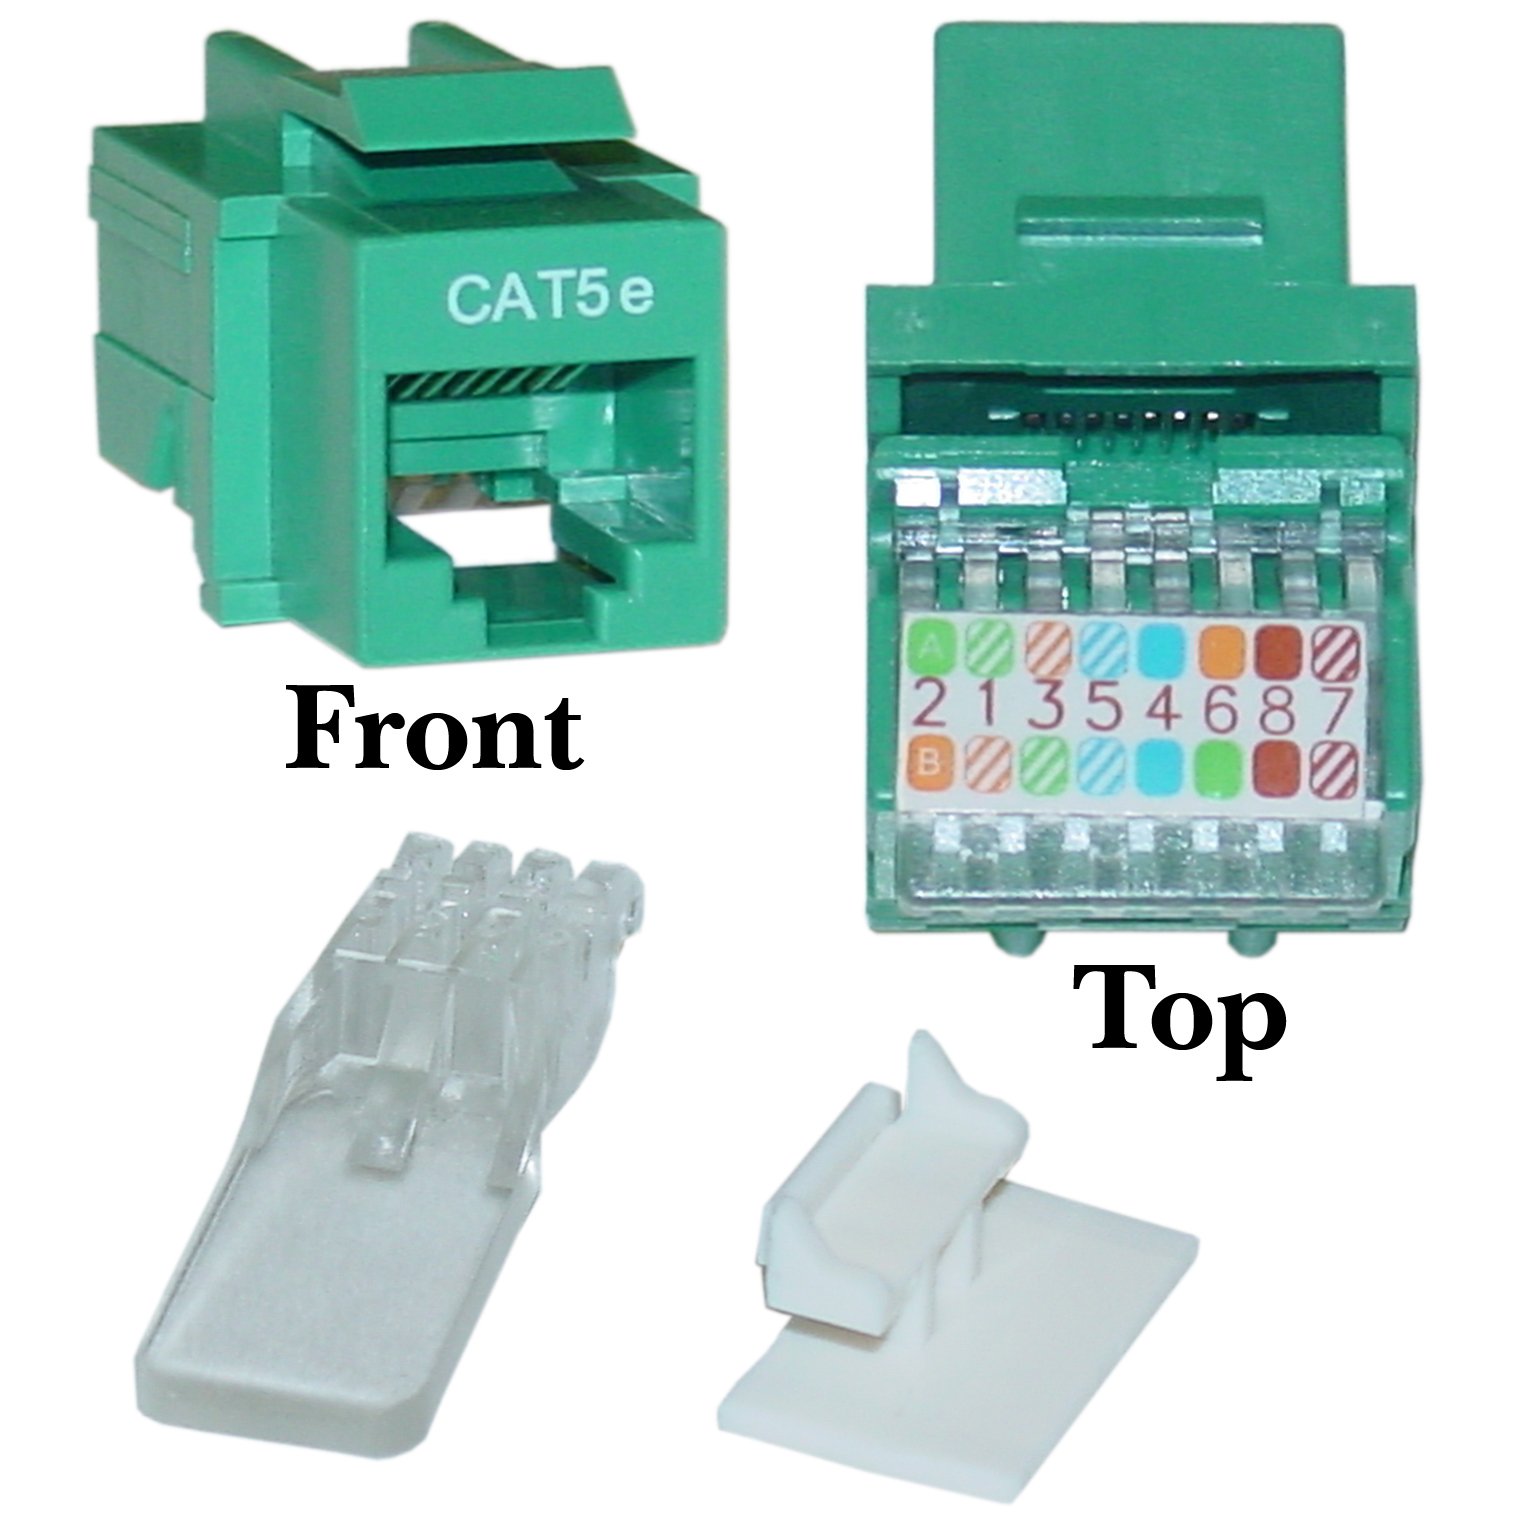 For The Cat 5 Cable Rj45 Jack Wiring Diagram Green Cat5e Rj45 Keystone Jack Toolless